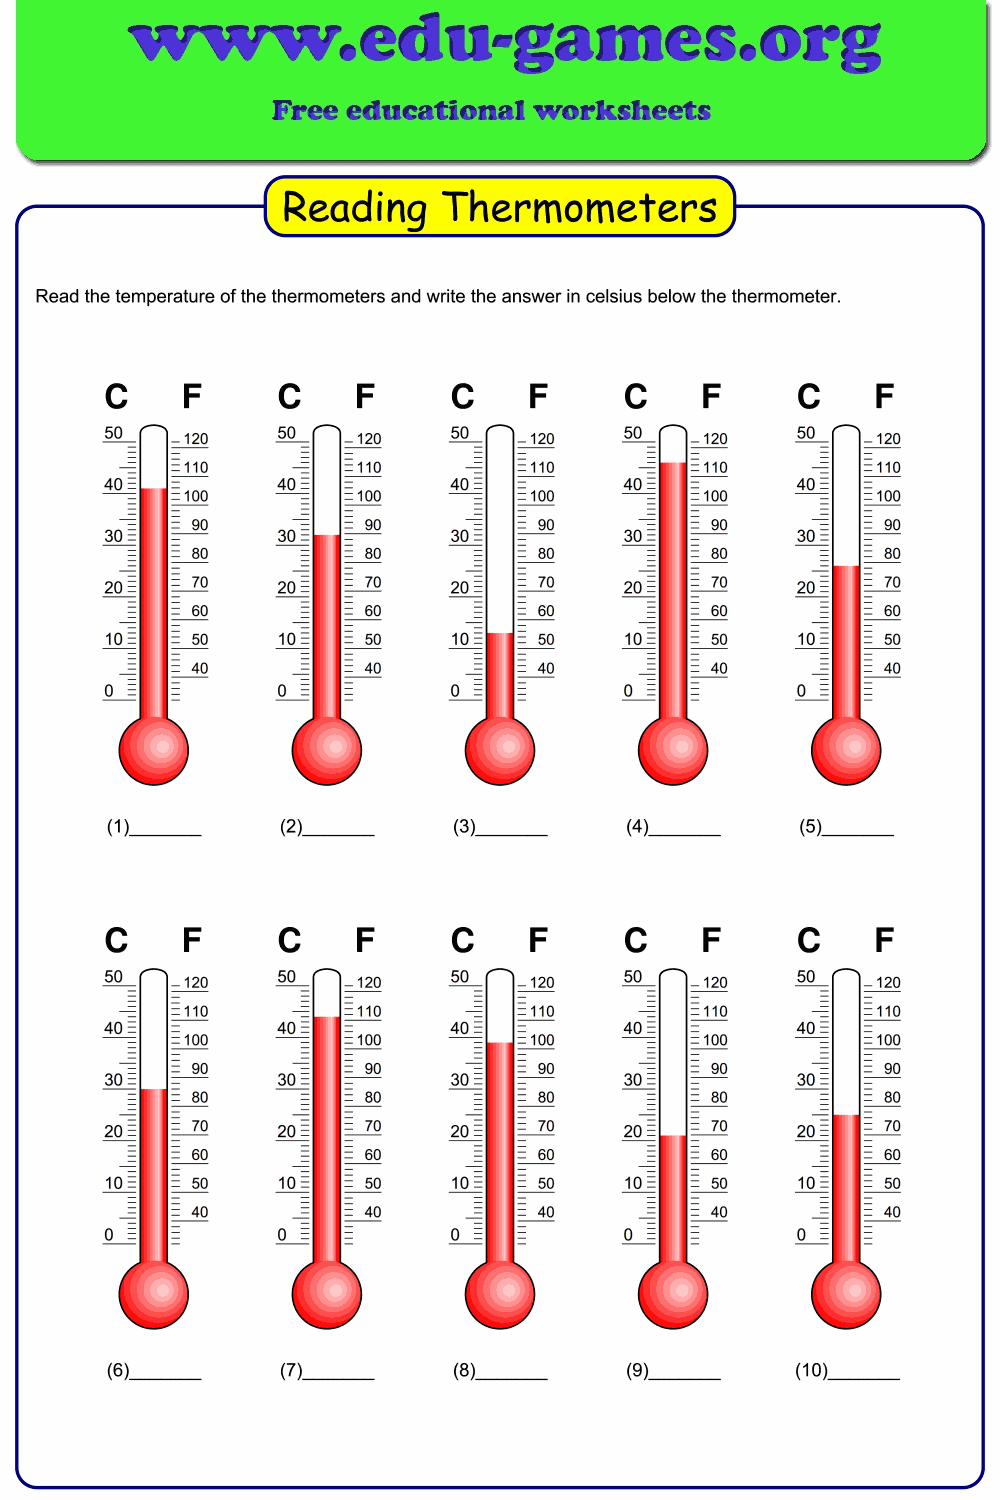 High Quality Reading Thermometers Worksheet With Many Options Celcius Or Fahrenheit Only Temperatures Ab Worksheets Reading Worksheets Educational Worksheets